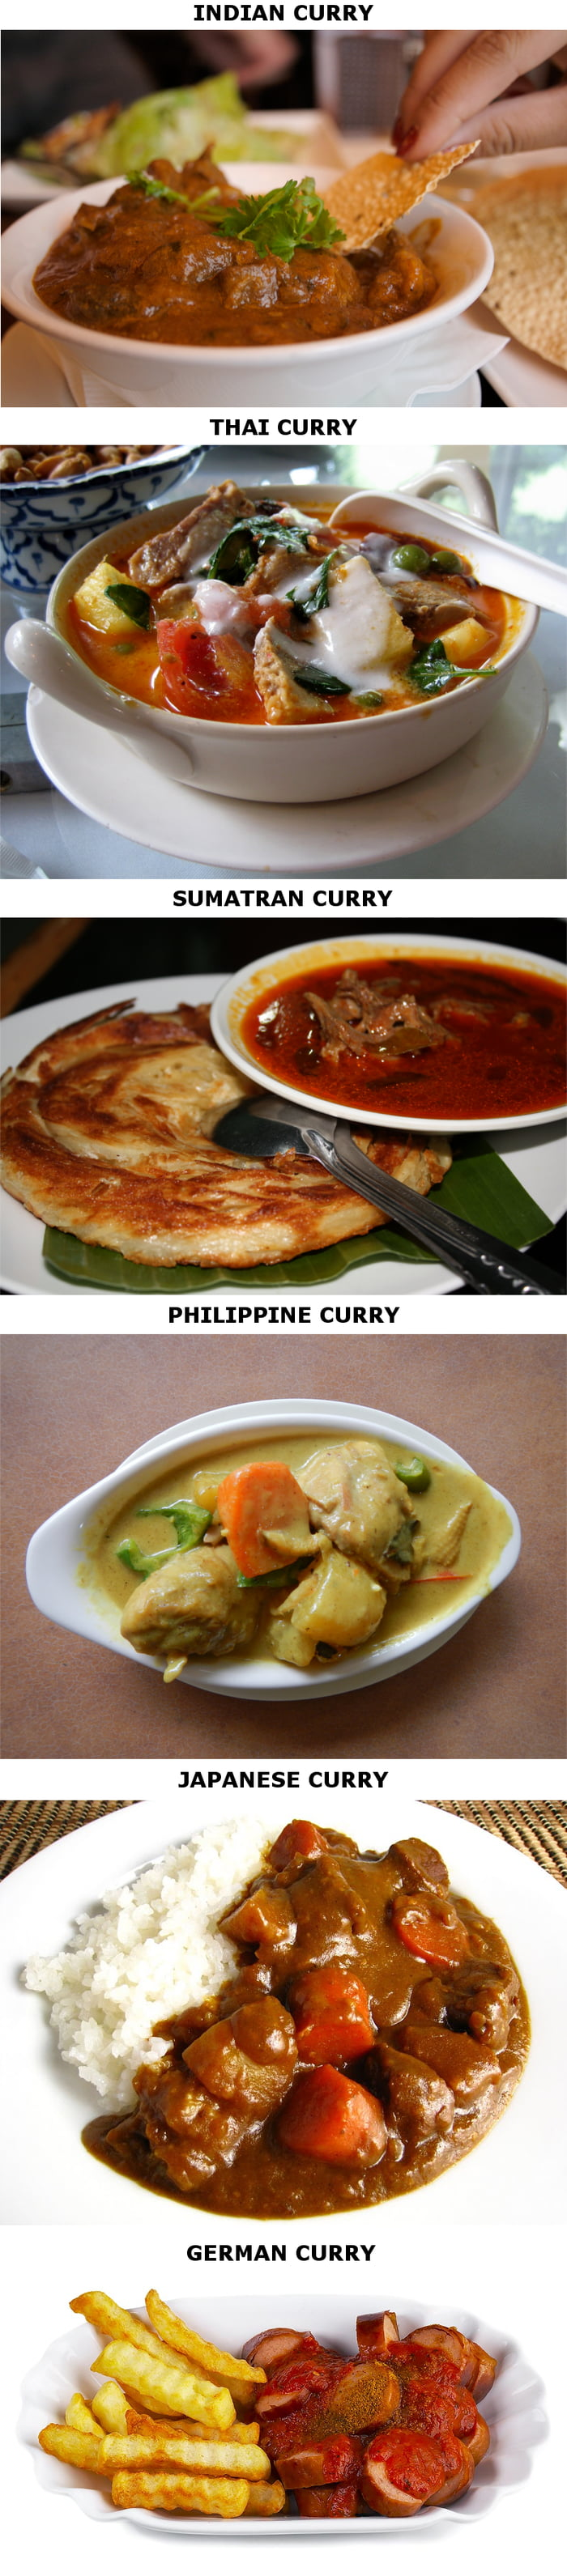 Curries from around the world